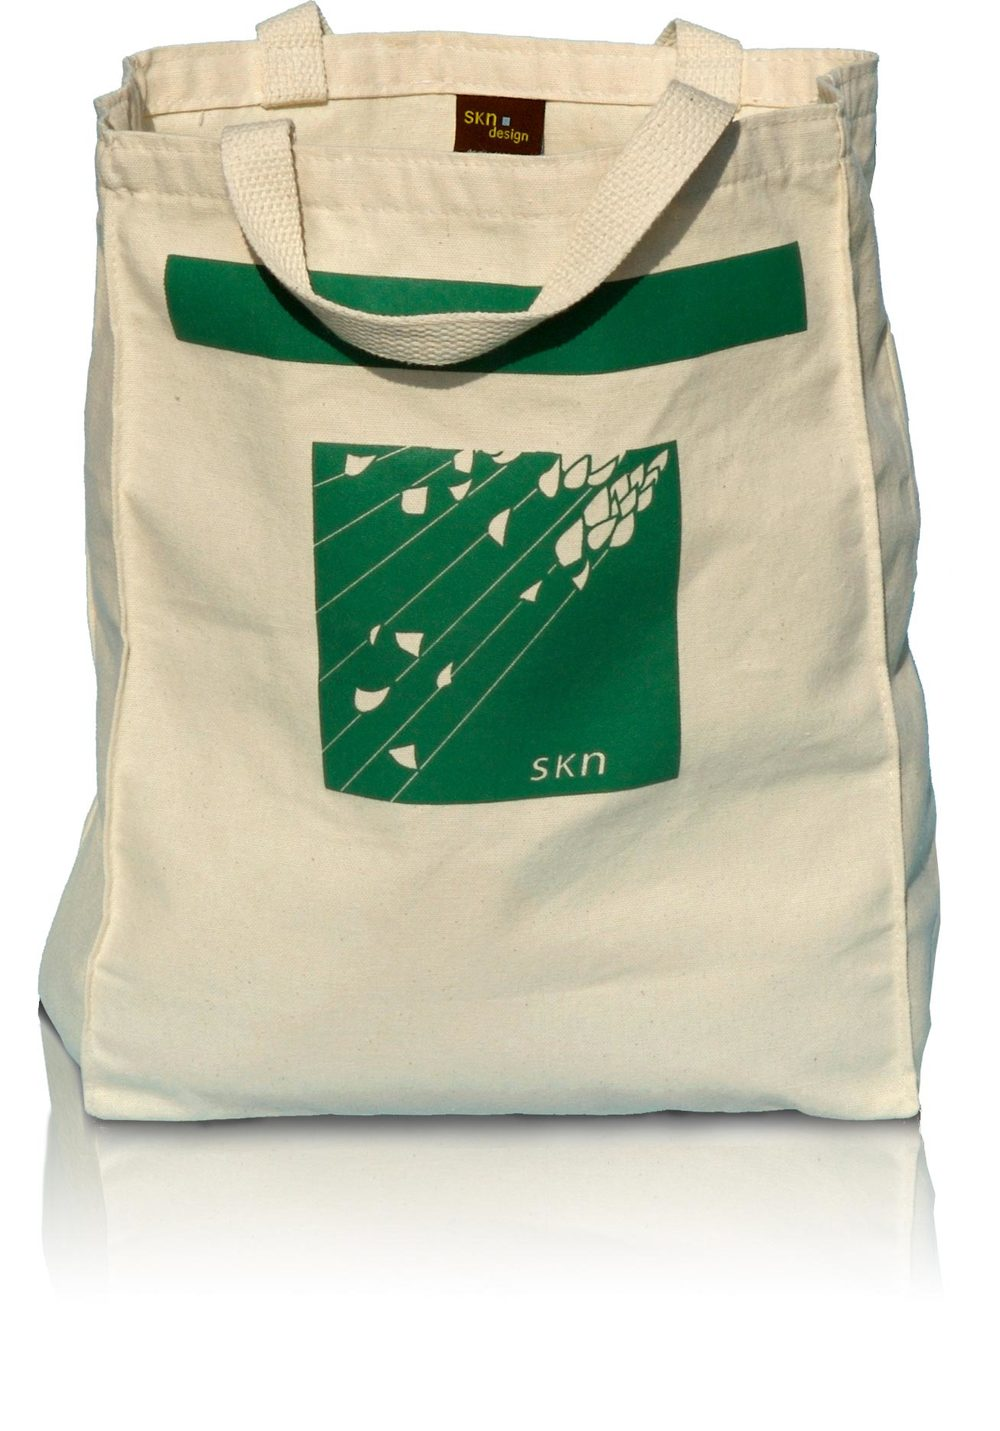 Reusable Grocery Tote—The Asparagus Bag